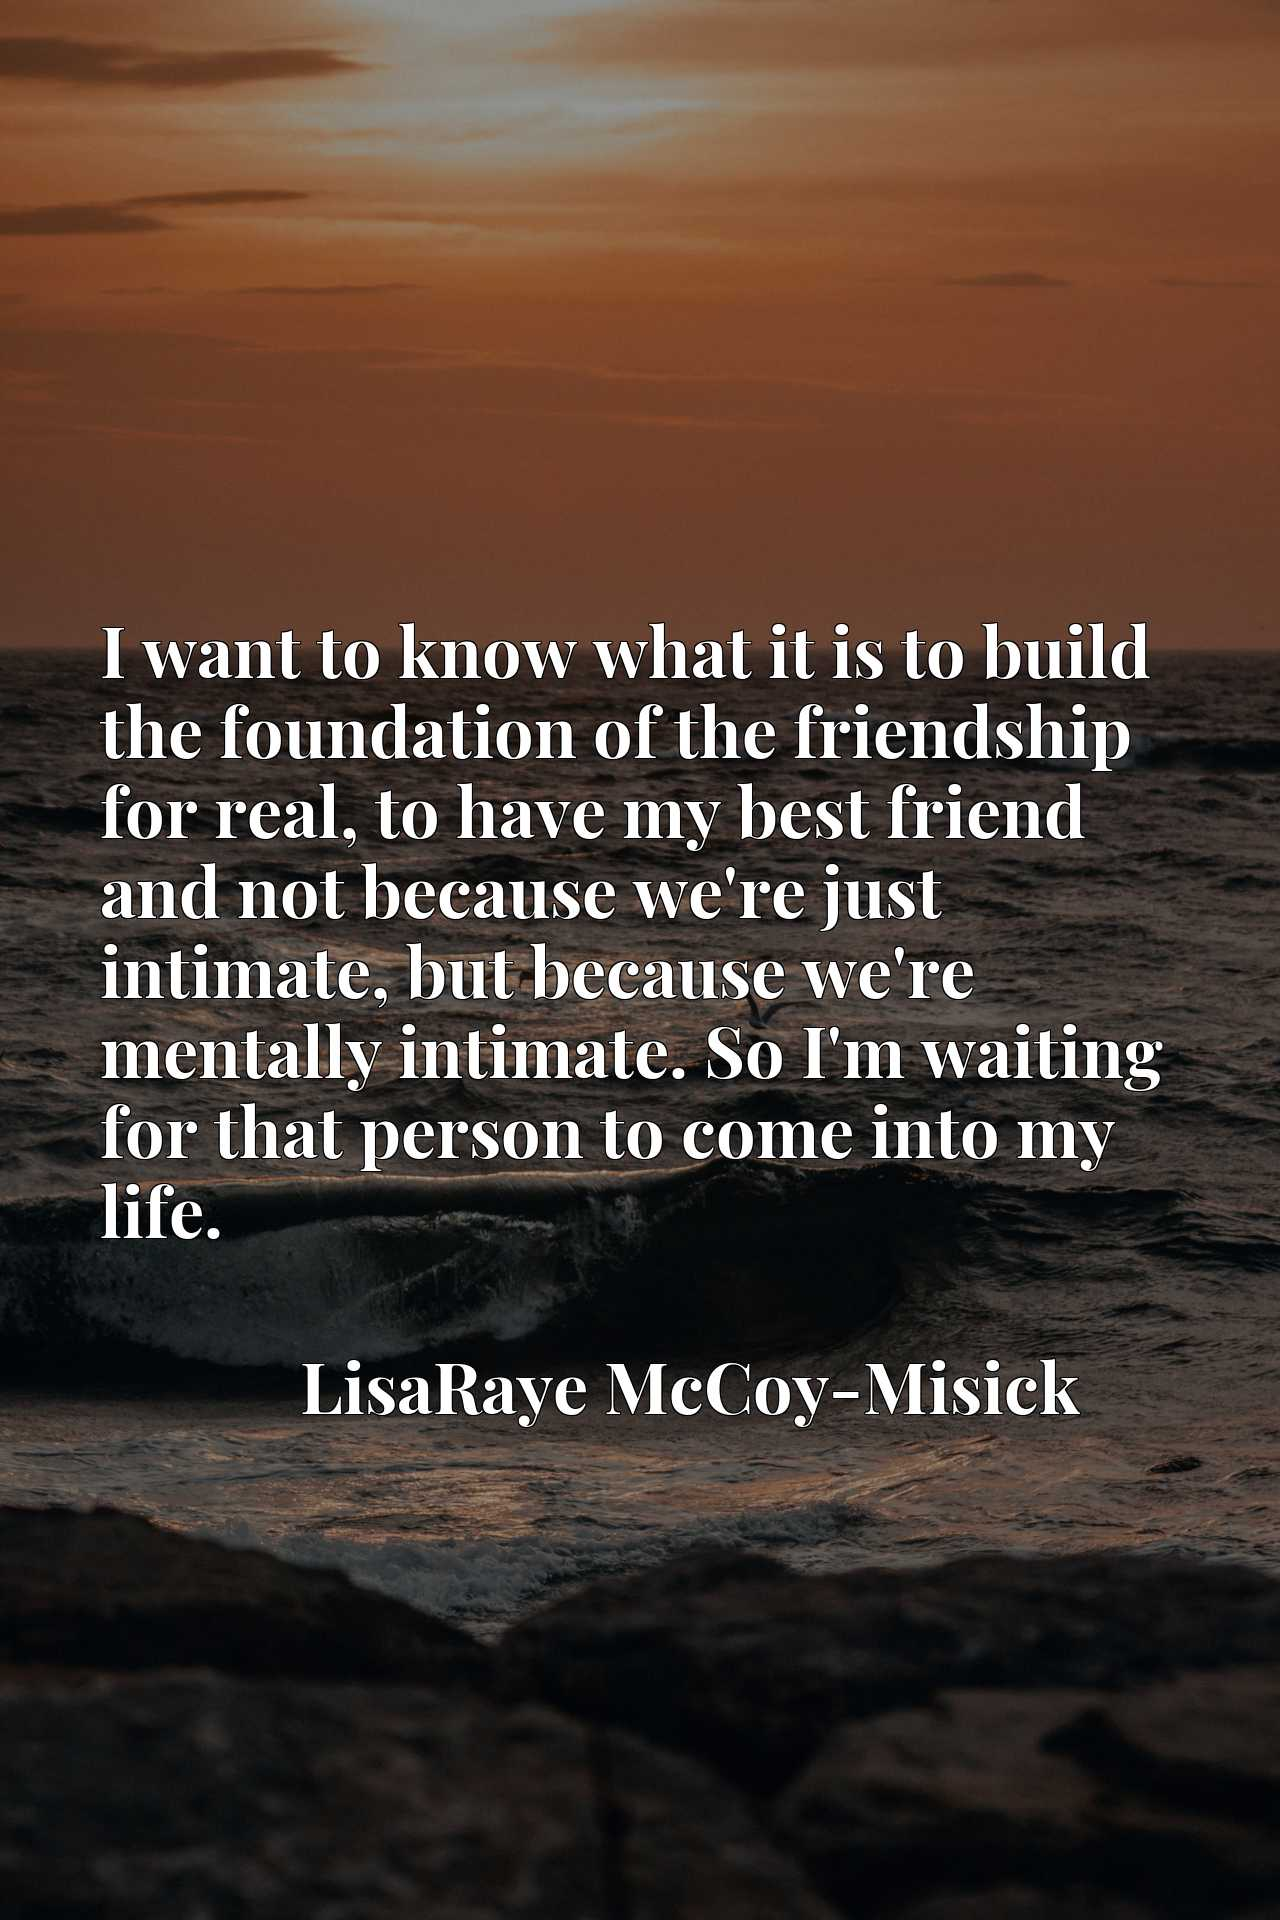 I want to know what it is to build the foundation of the friendship for real, to have my best friend and not because we're just intimate, but because we're mentally intimate. So I'm waiting for that person to come into my life.